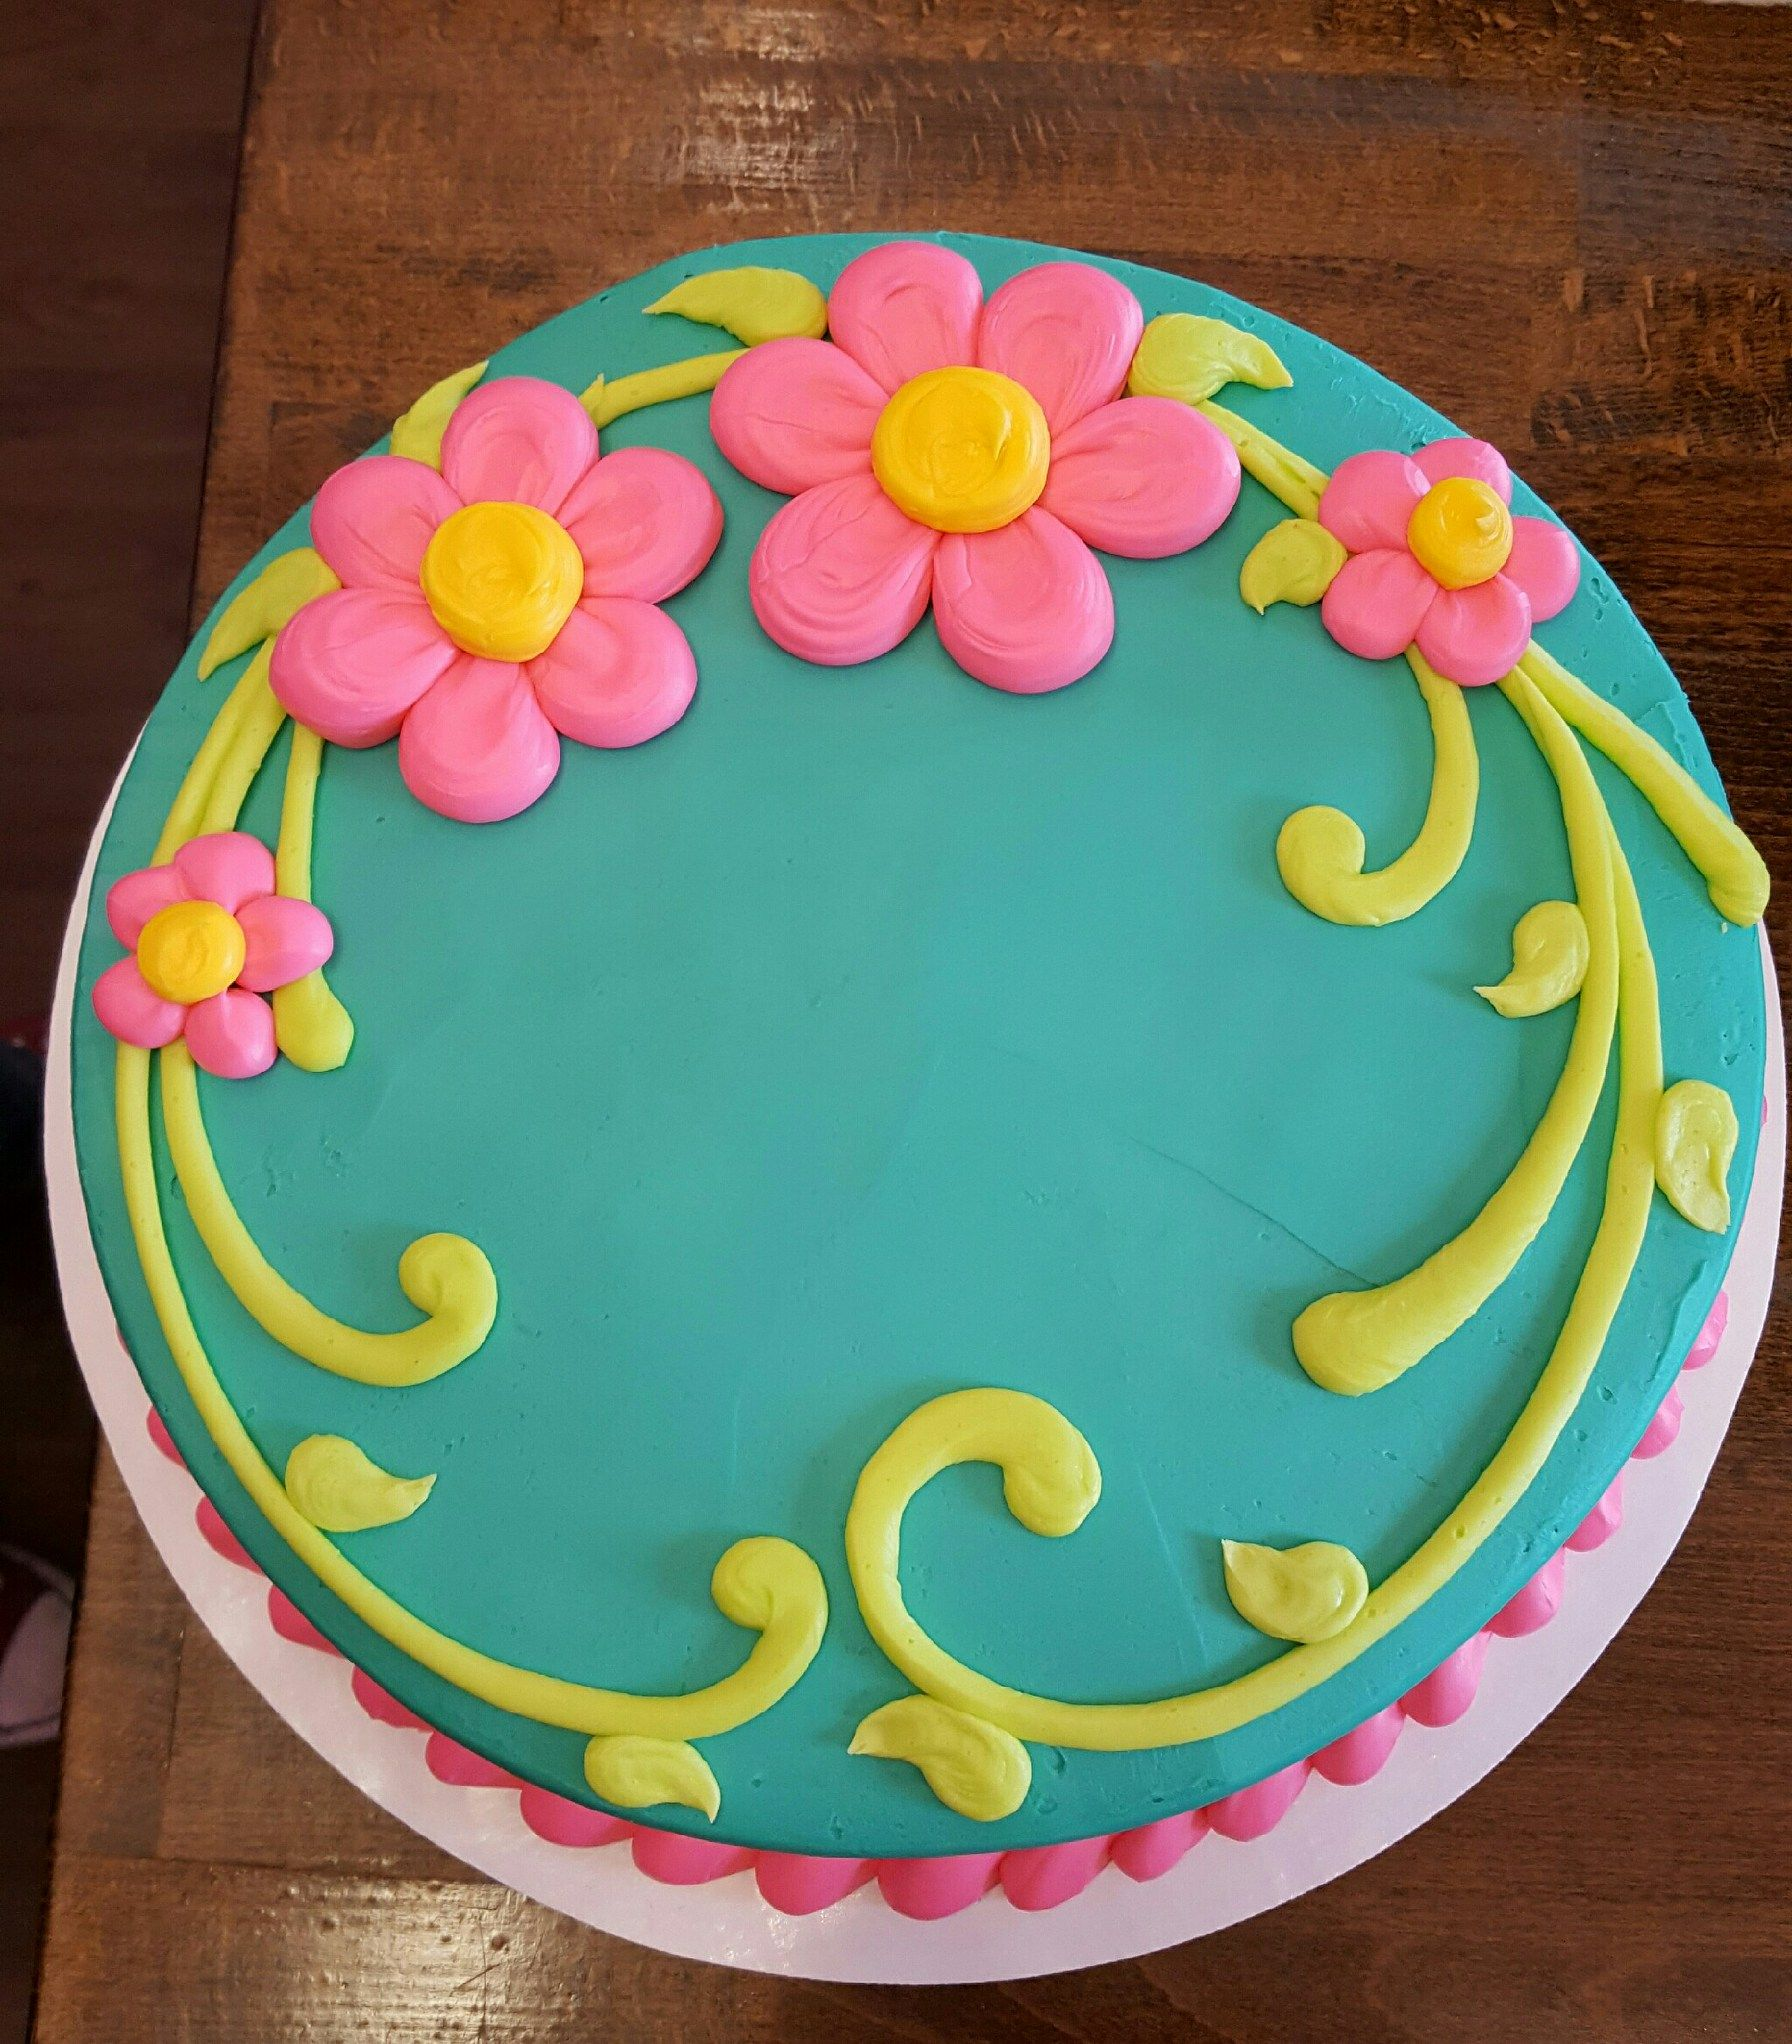 Butter Icing Cake Decorating Ideas : sencilla Pasteles Pinterest Cake, Decorating and Big ...